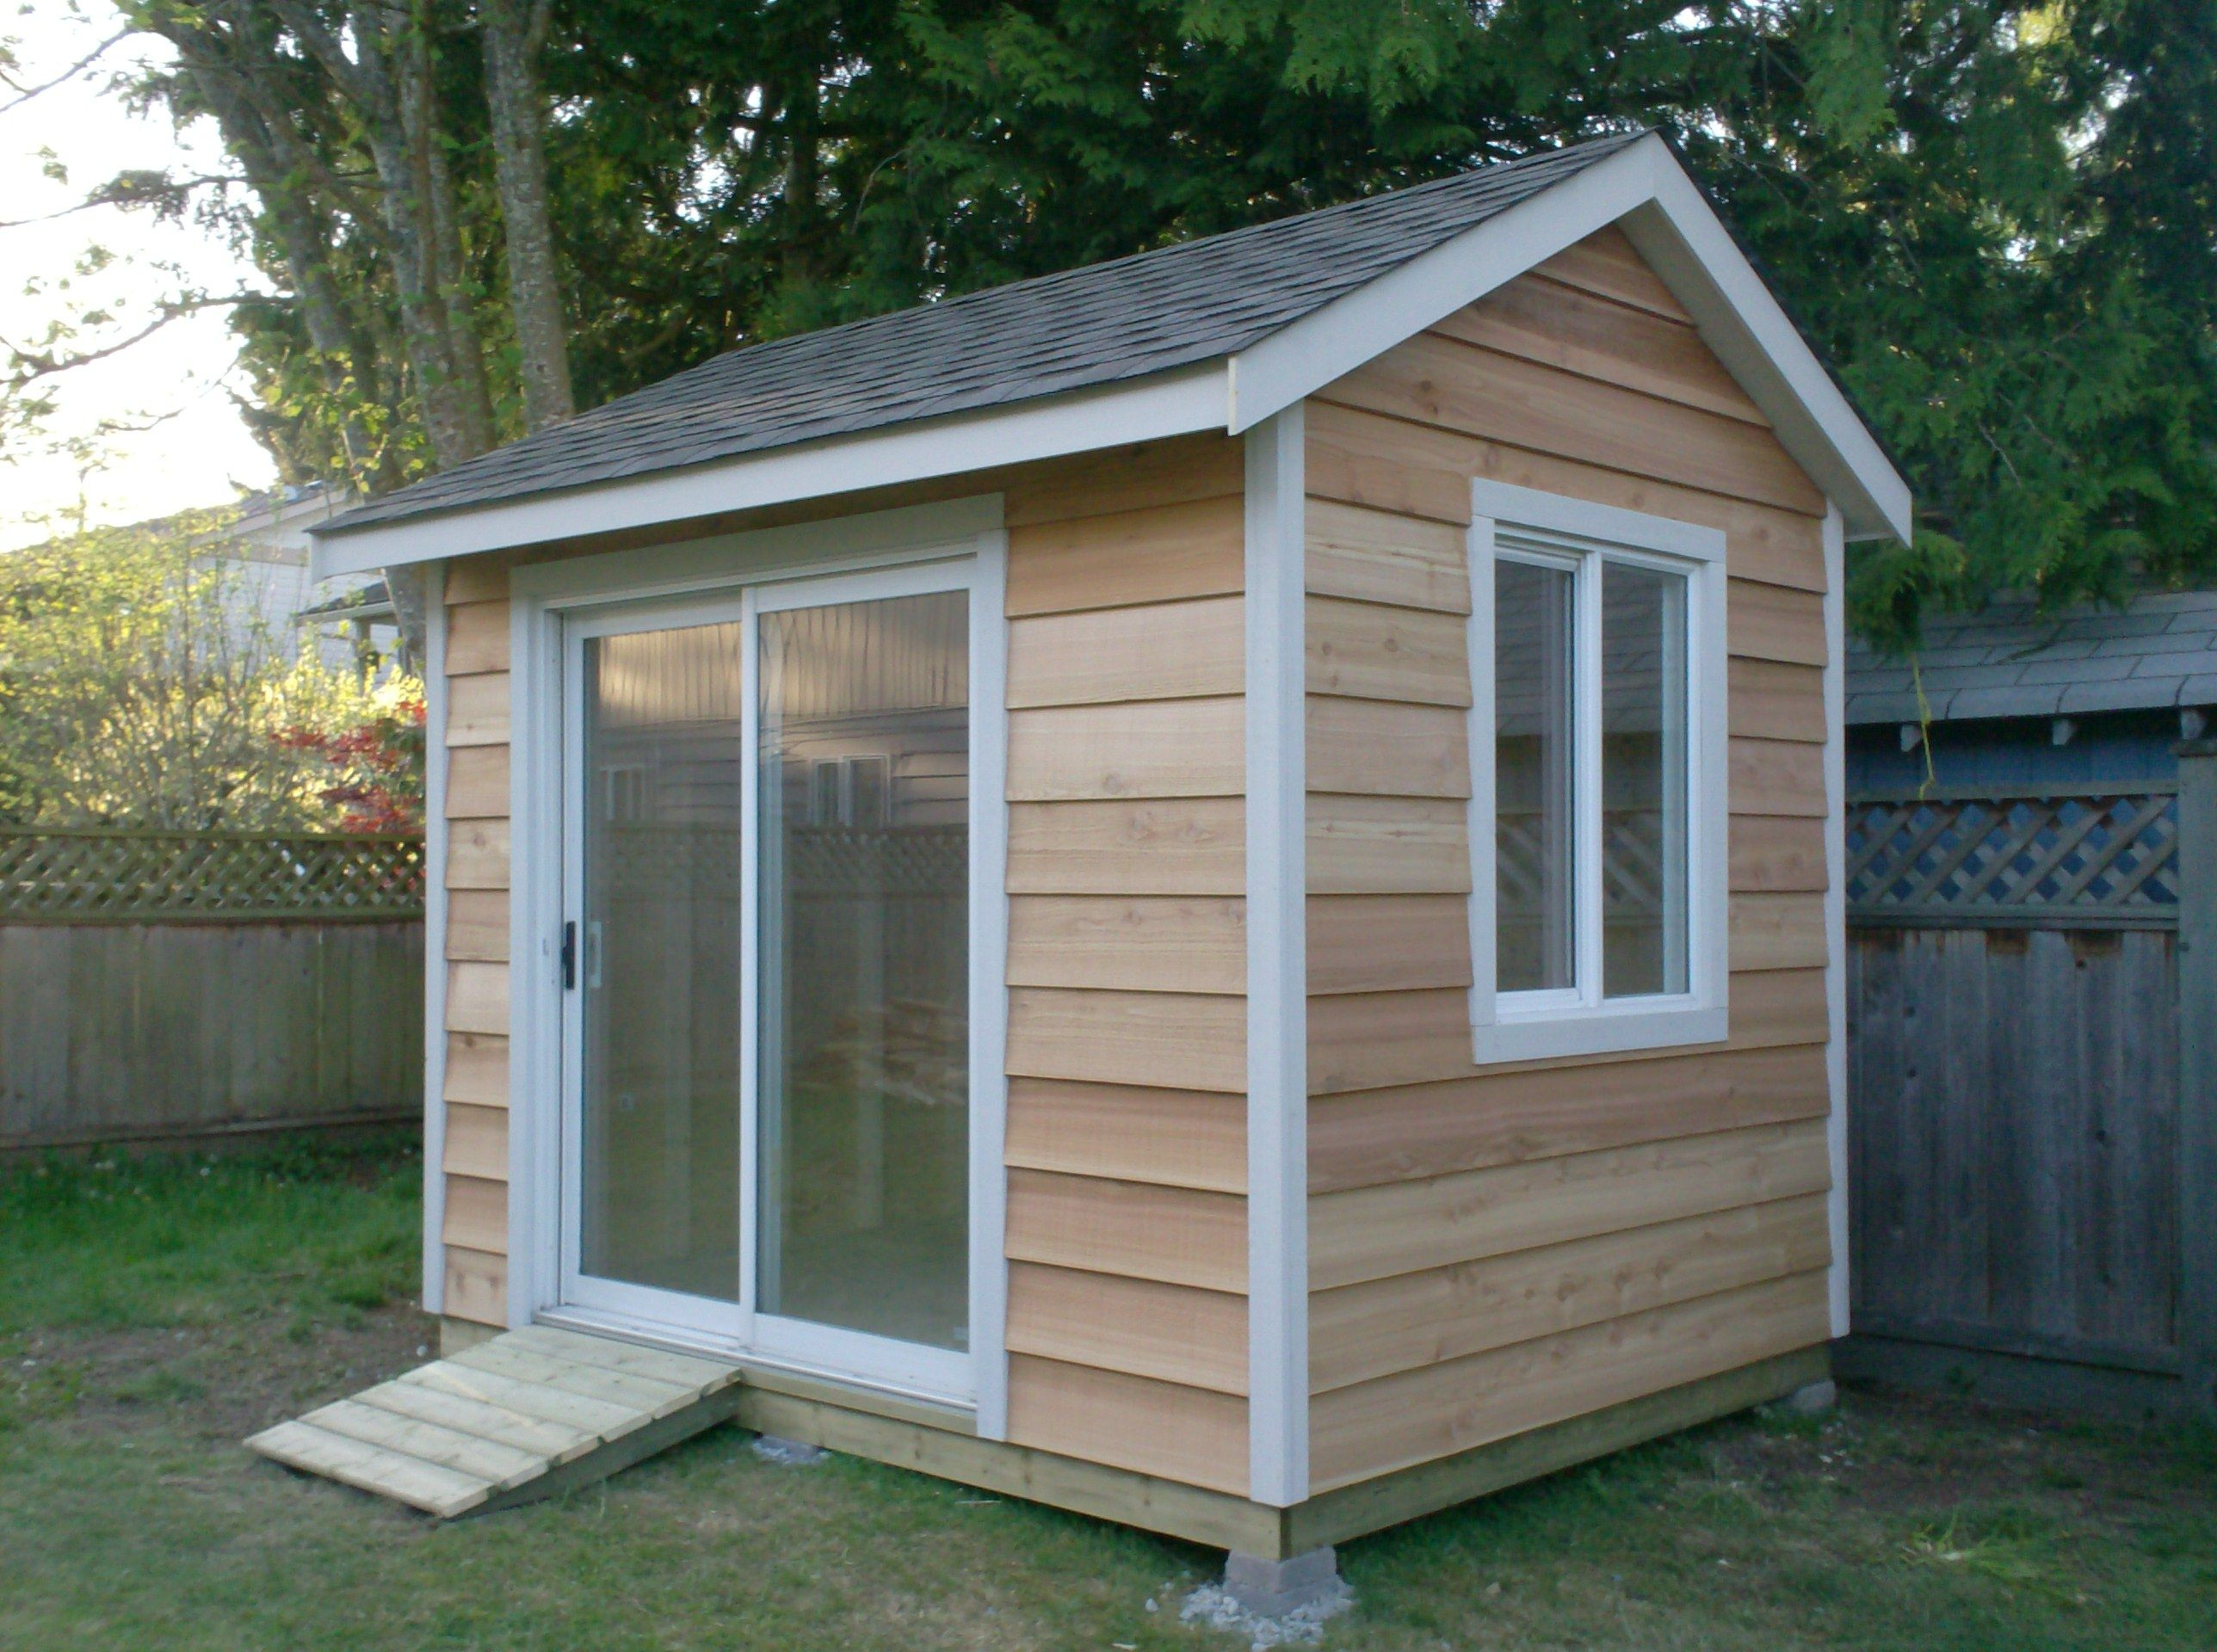 the backyard works product range includes backyard sheds backyard studios backyard offices and home renovations serving vancouver surrey and coquitlam - Garden Sheds Vancouver